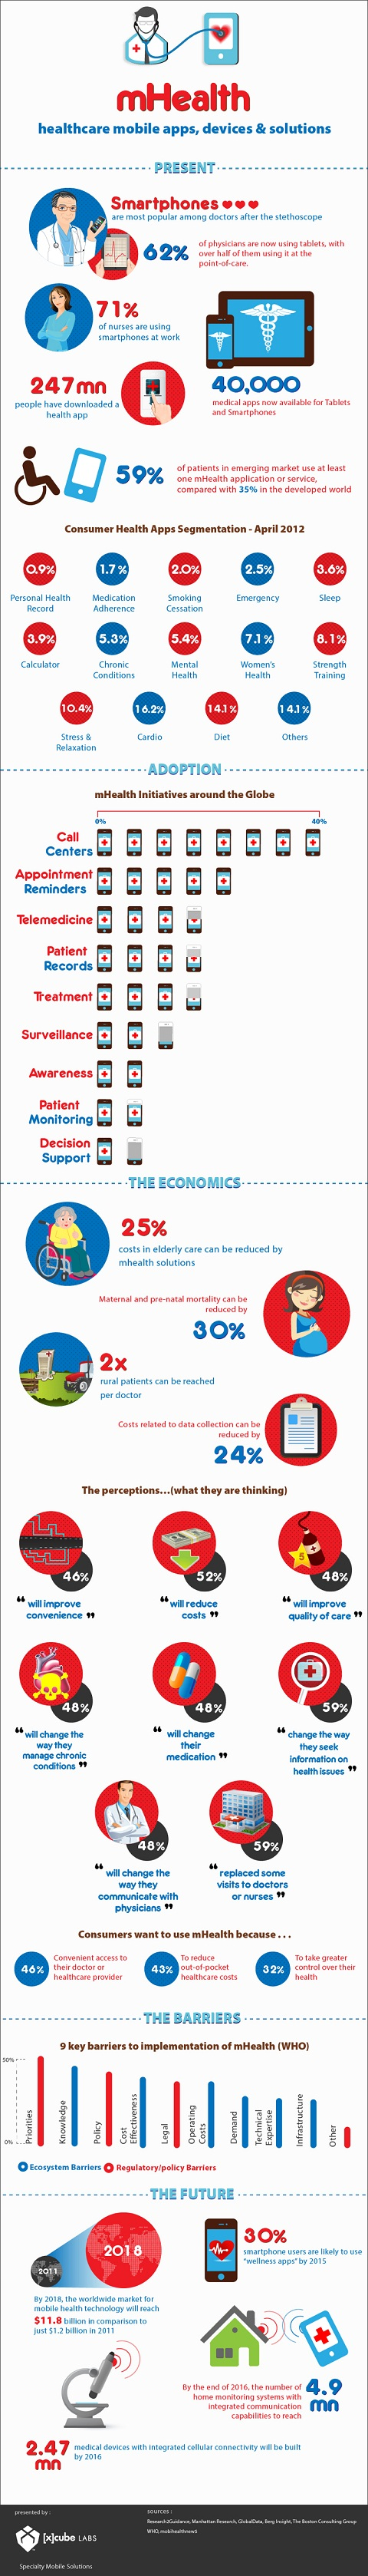 Mobile-Healthcare-Faces-the-Future-Infographic